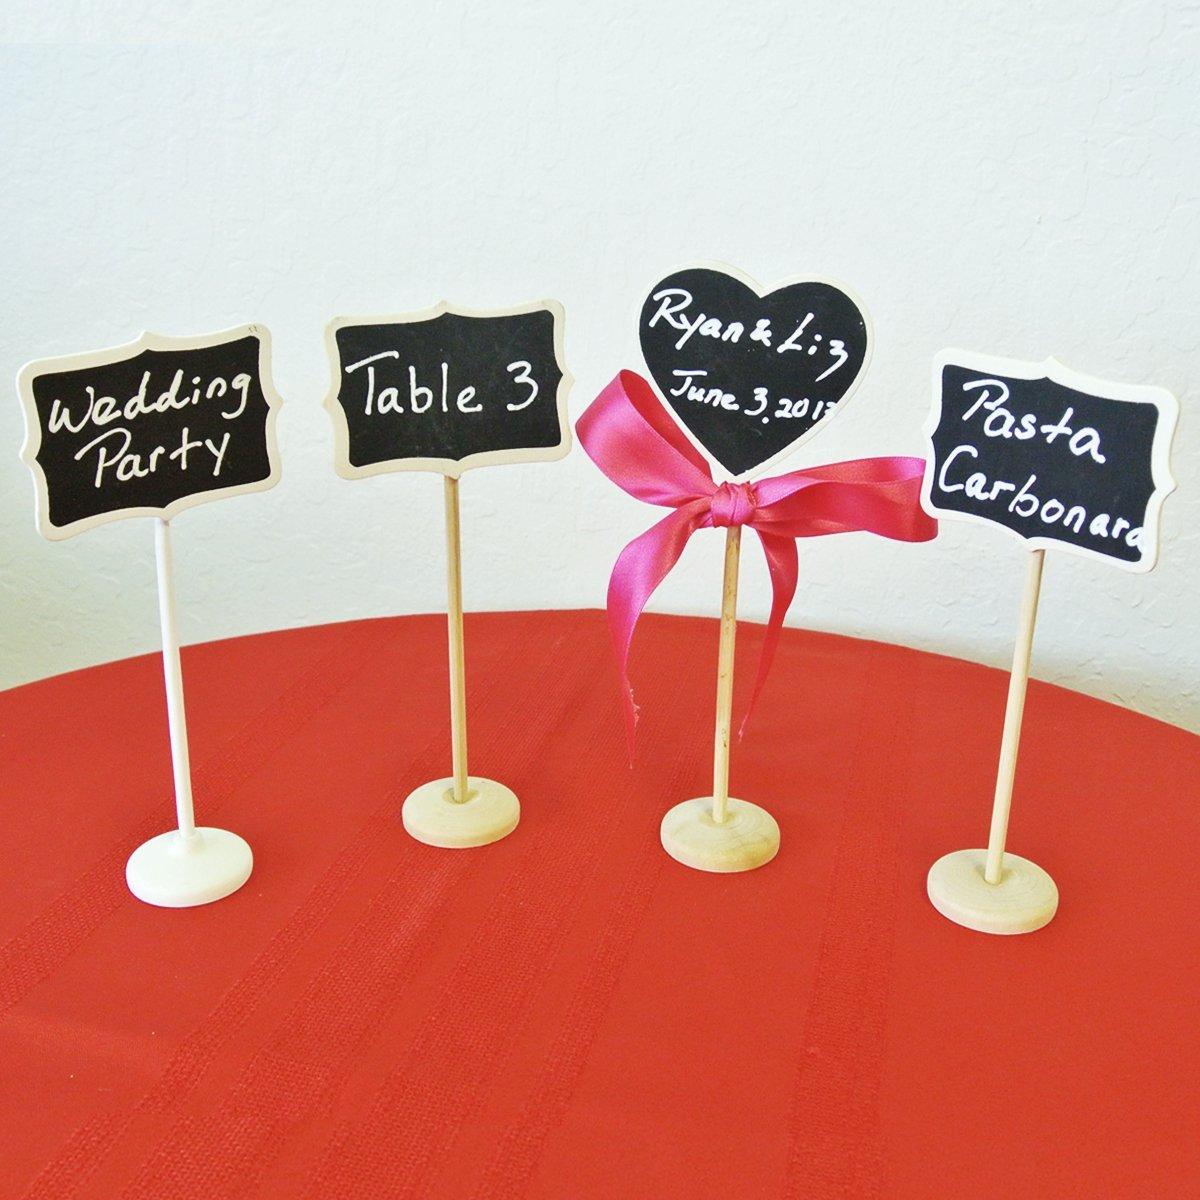 "Set of 8 Chalkboard Stands With Chalkboard Stickers, 3"" x 2"" Rectangle"